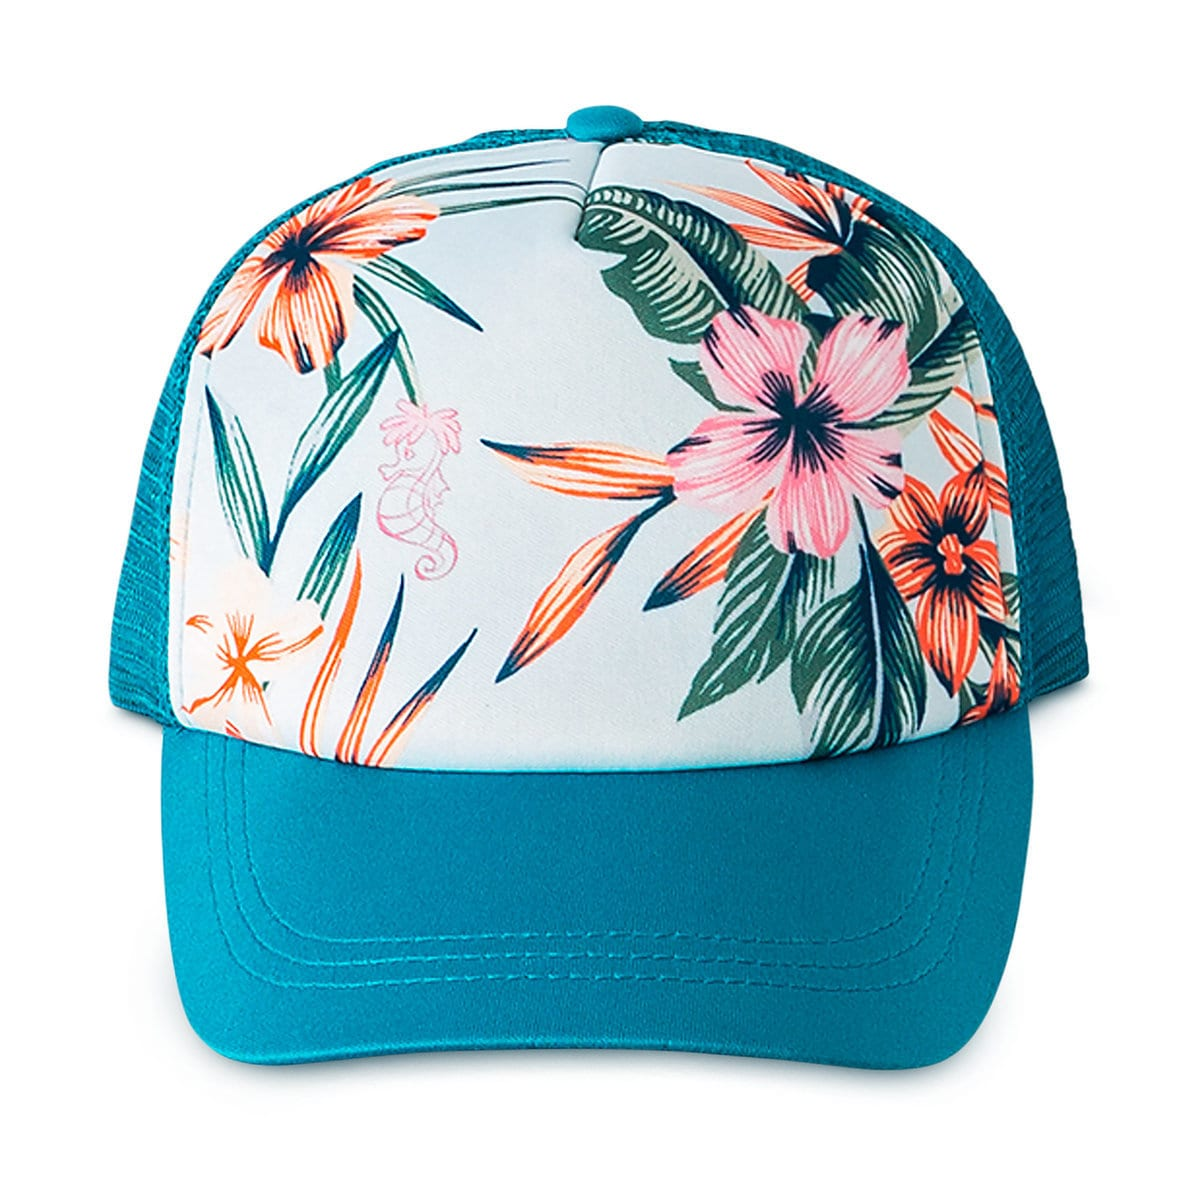 6149e07c9ef196 Product Image of The Little Mermaid Trucker Hat for Girls by ROXY Girl # 1